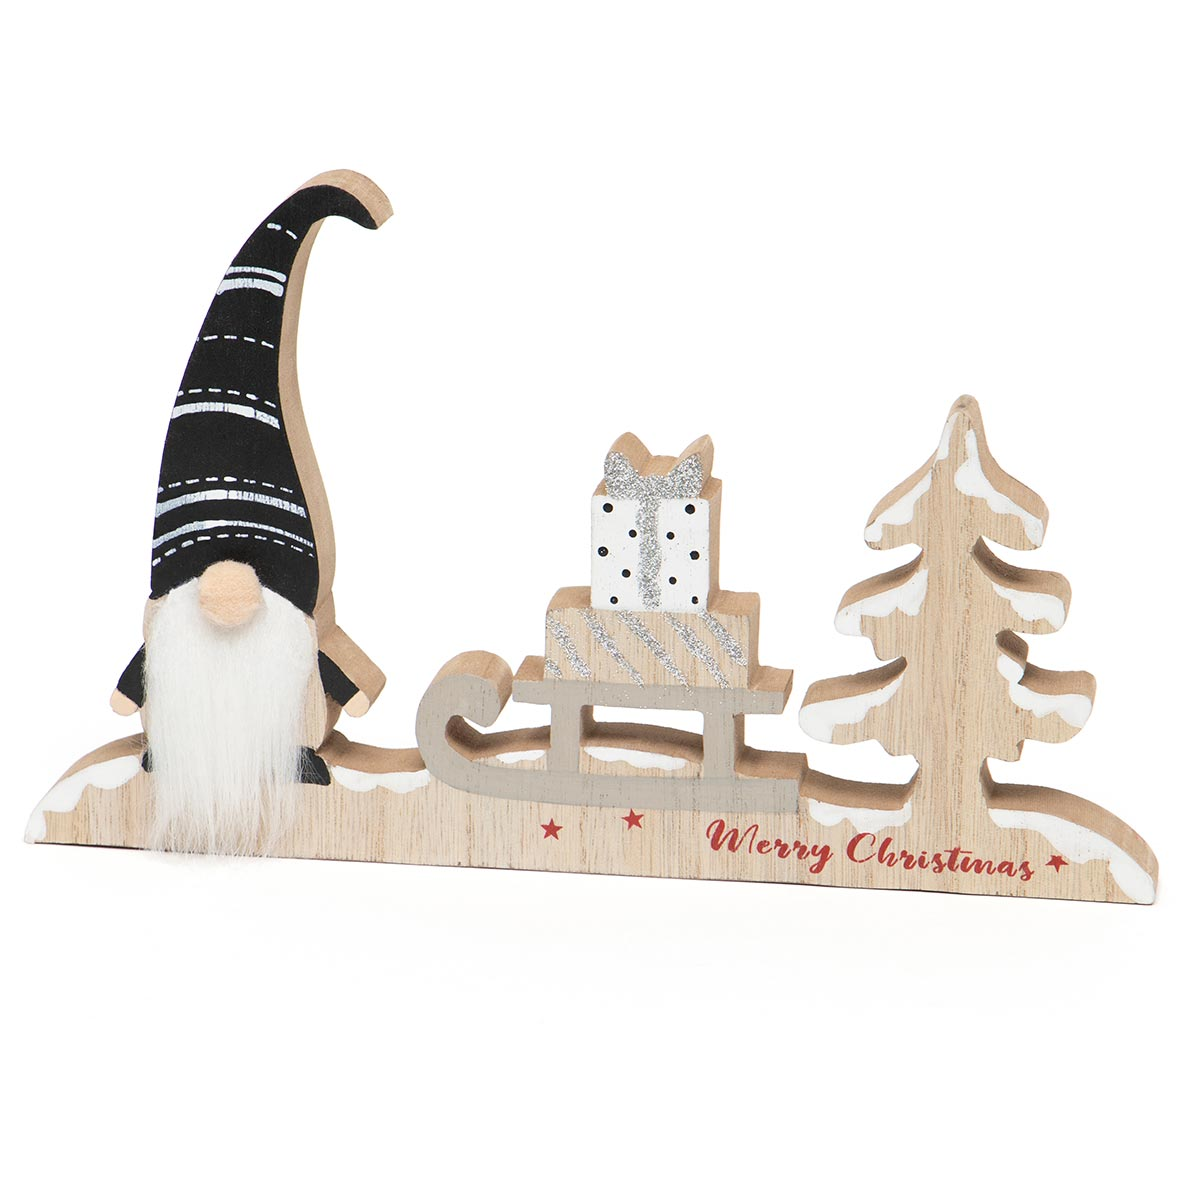 FALALA GNOME WOOD SHELF SITTER BLACK/WHITE/NATURAL WITH